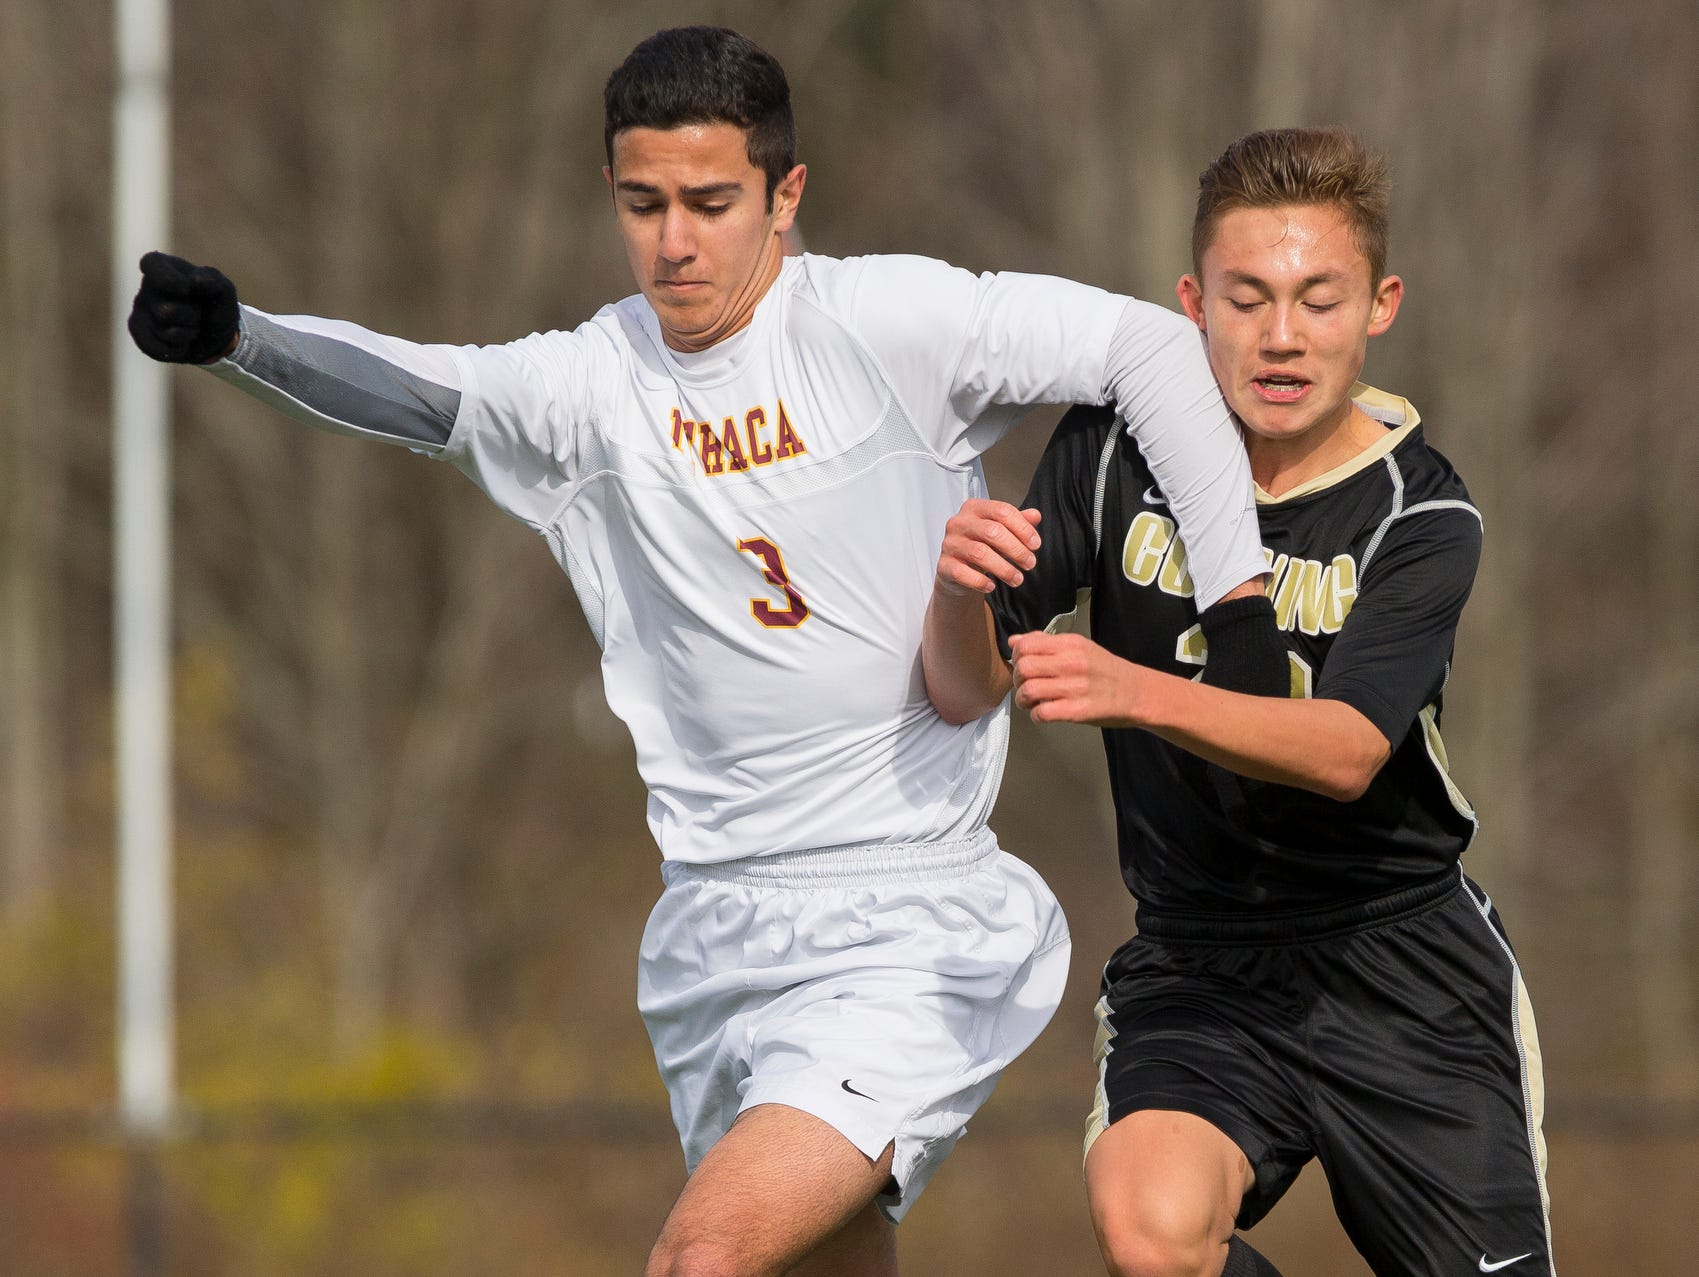 Ithaca's Clayton Curtis, left, holds off Corning's Andrew Araneo Saturday during Ithaca's 2-0 win in the Section IV Class AA game in Oneonta.